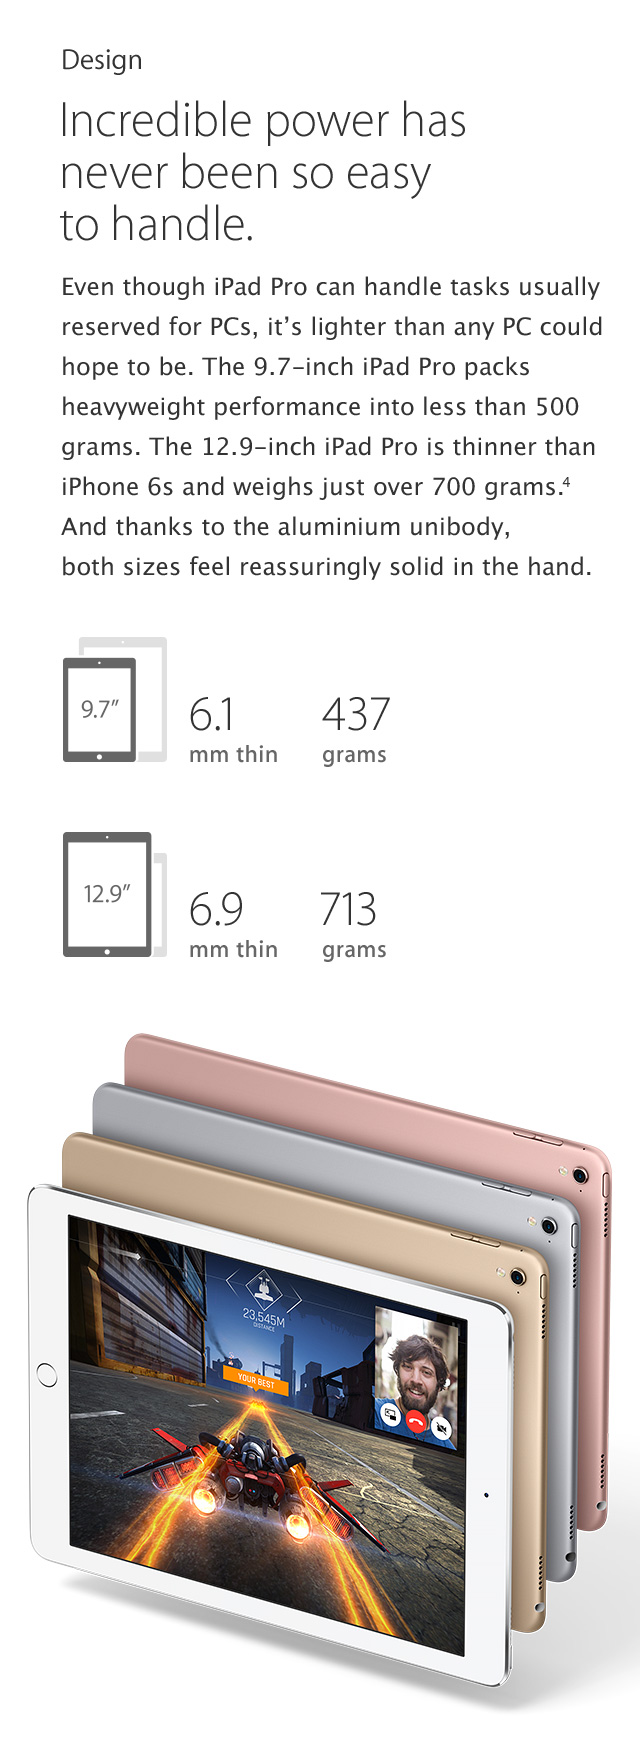 iPad Pro features